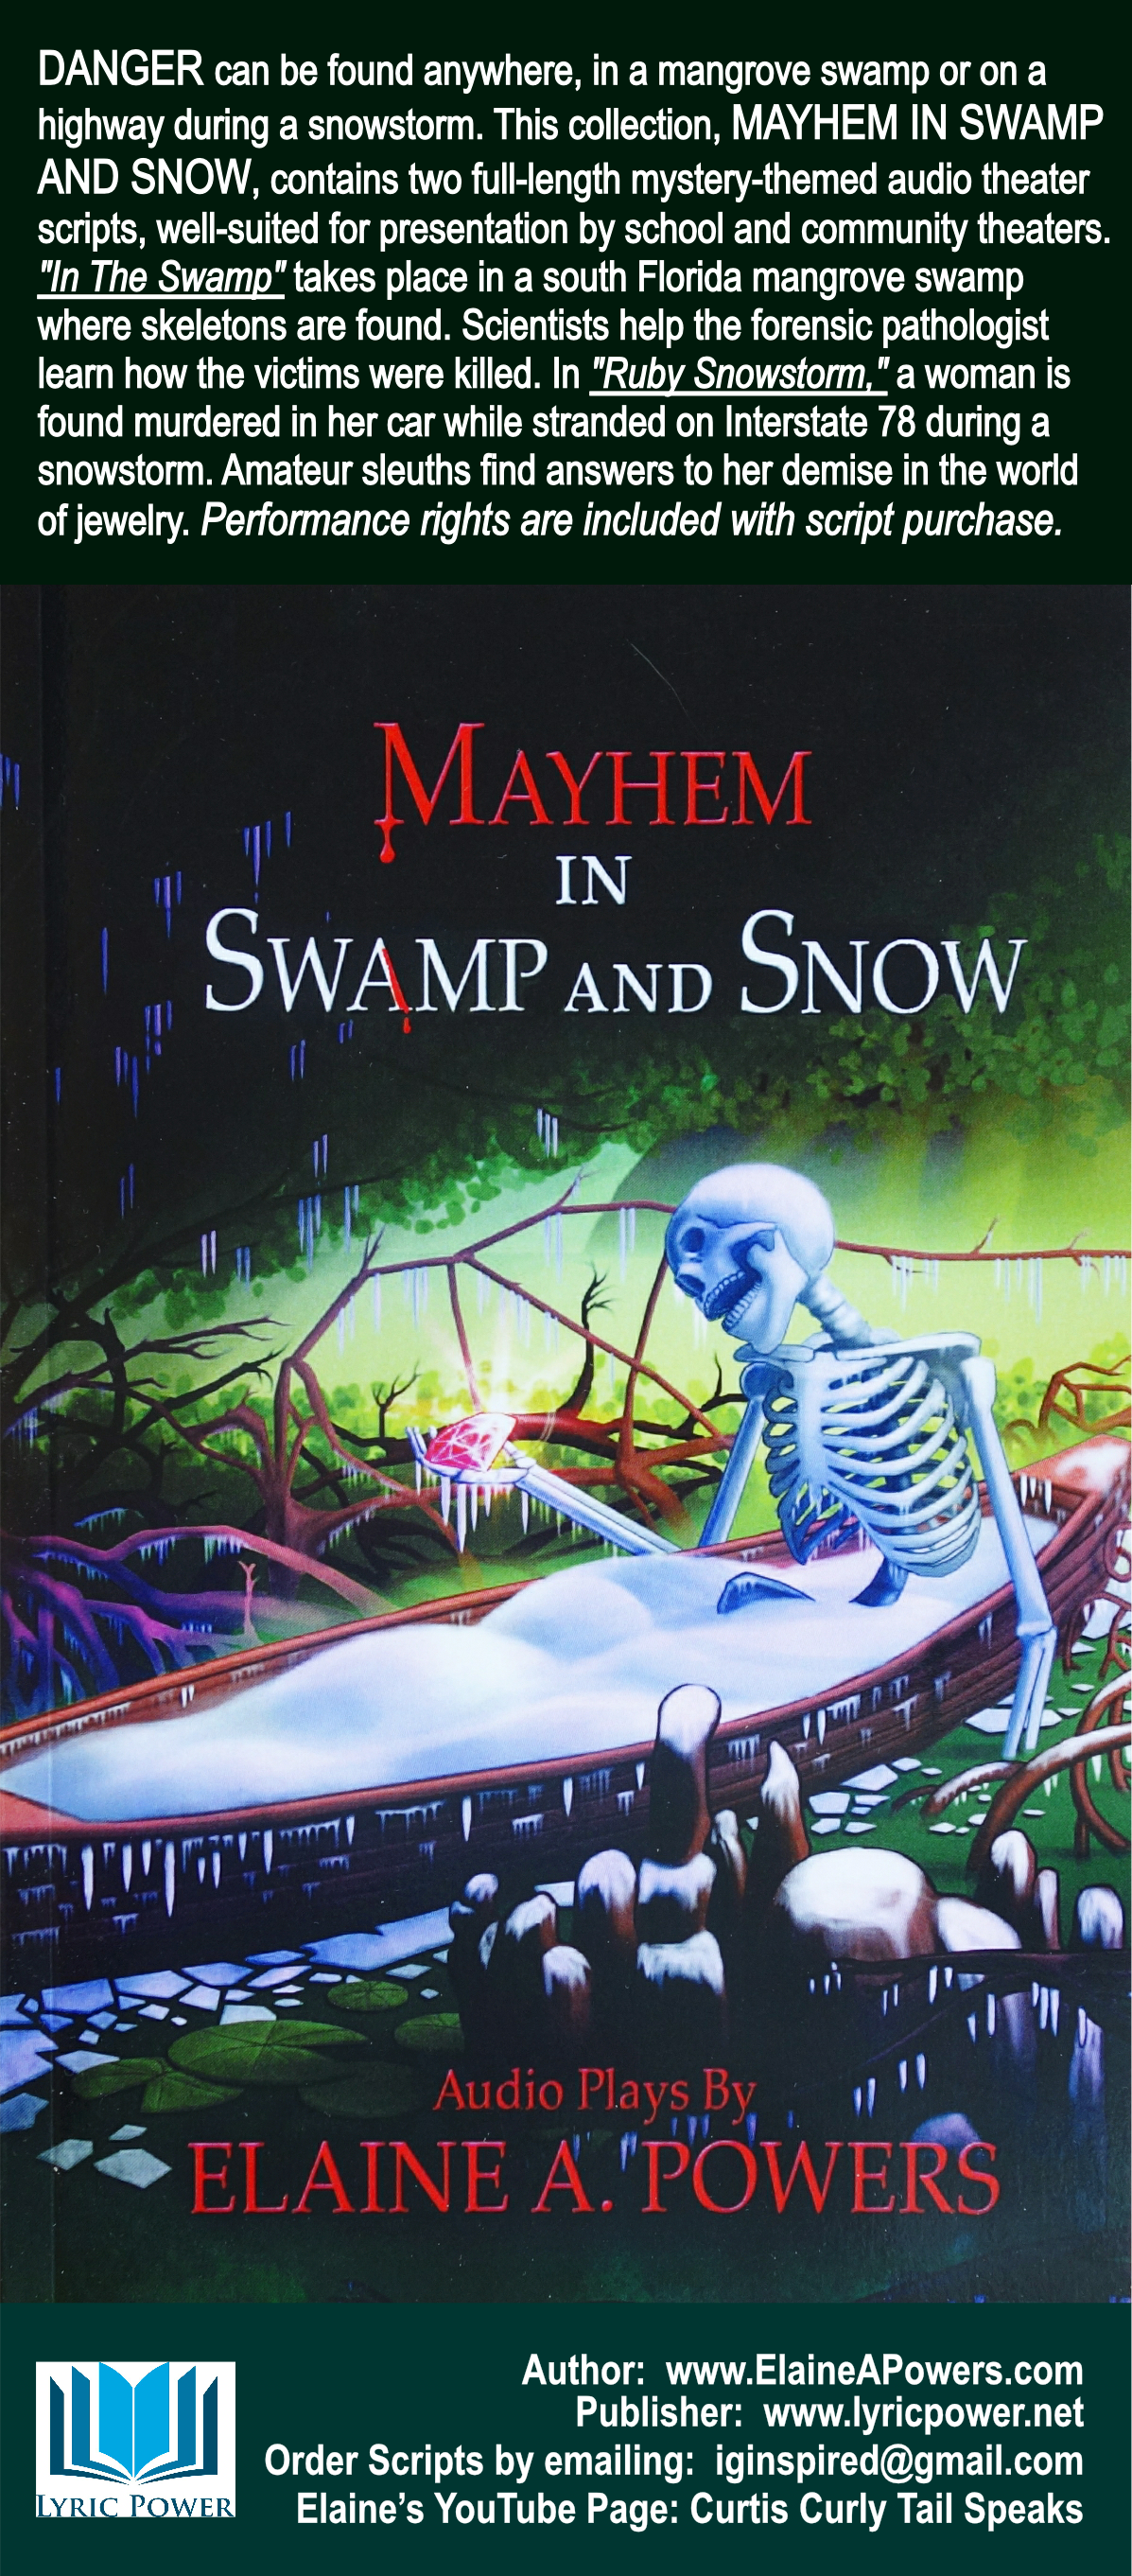 A black book cover, with an illustration of a skeleton in a canoe, in a swamp